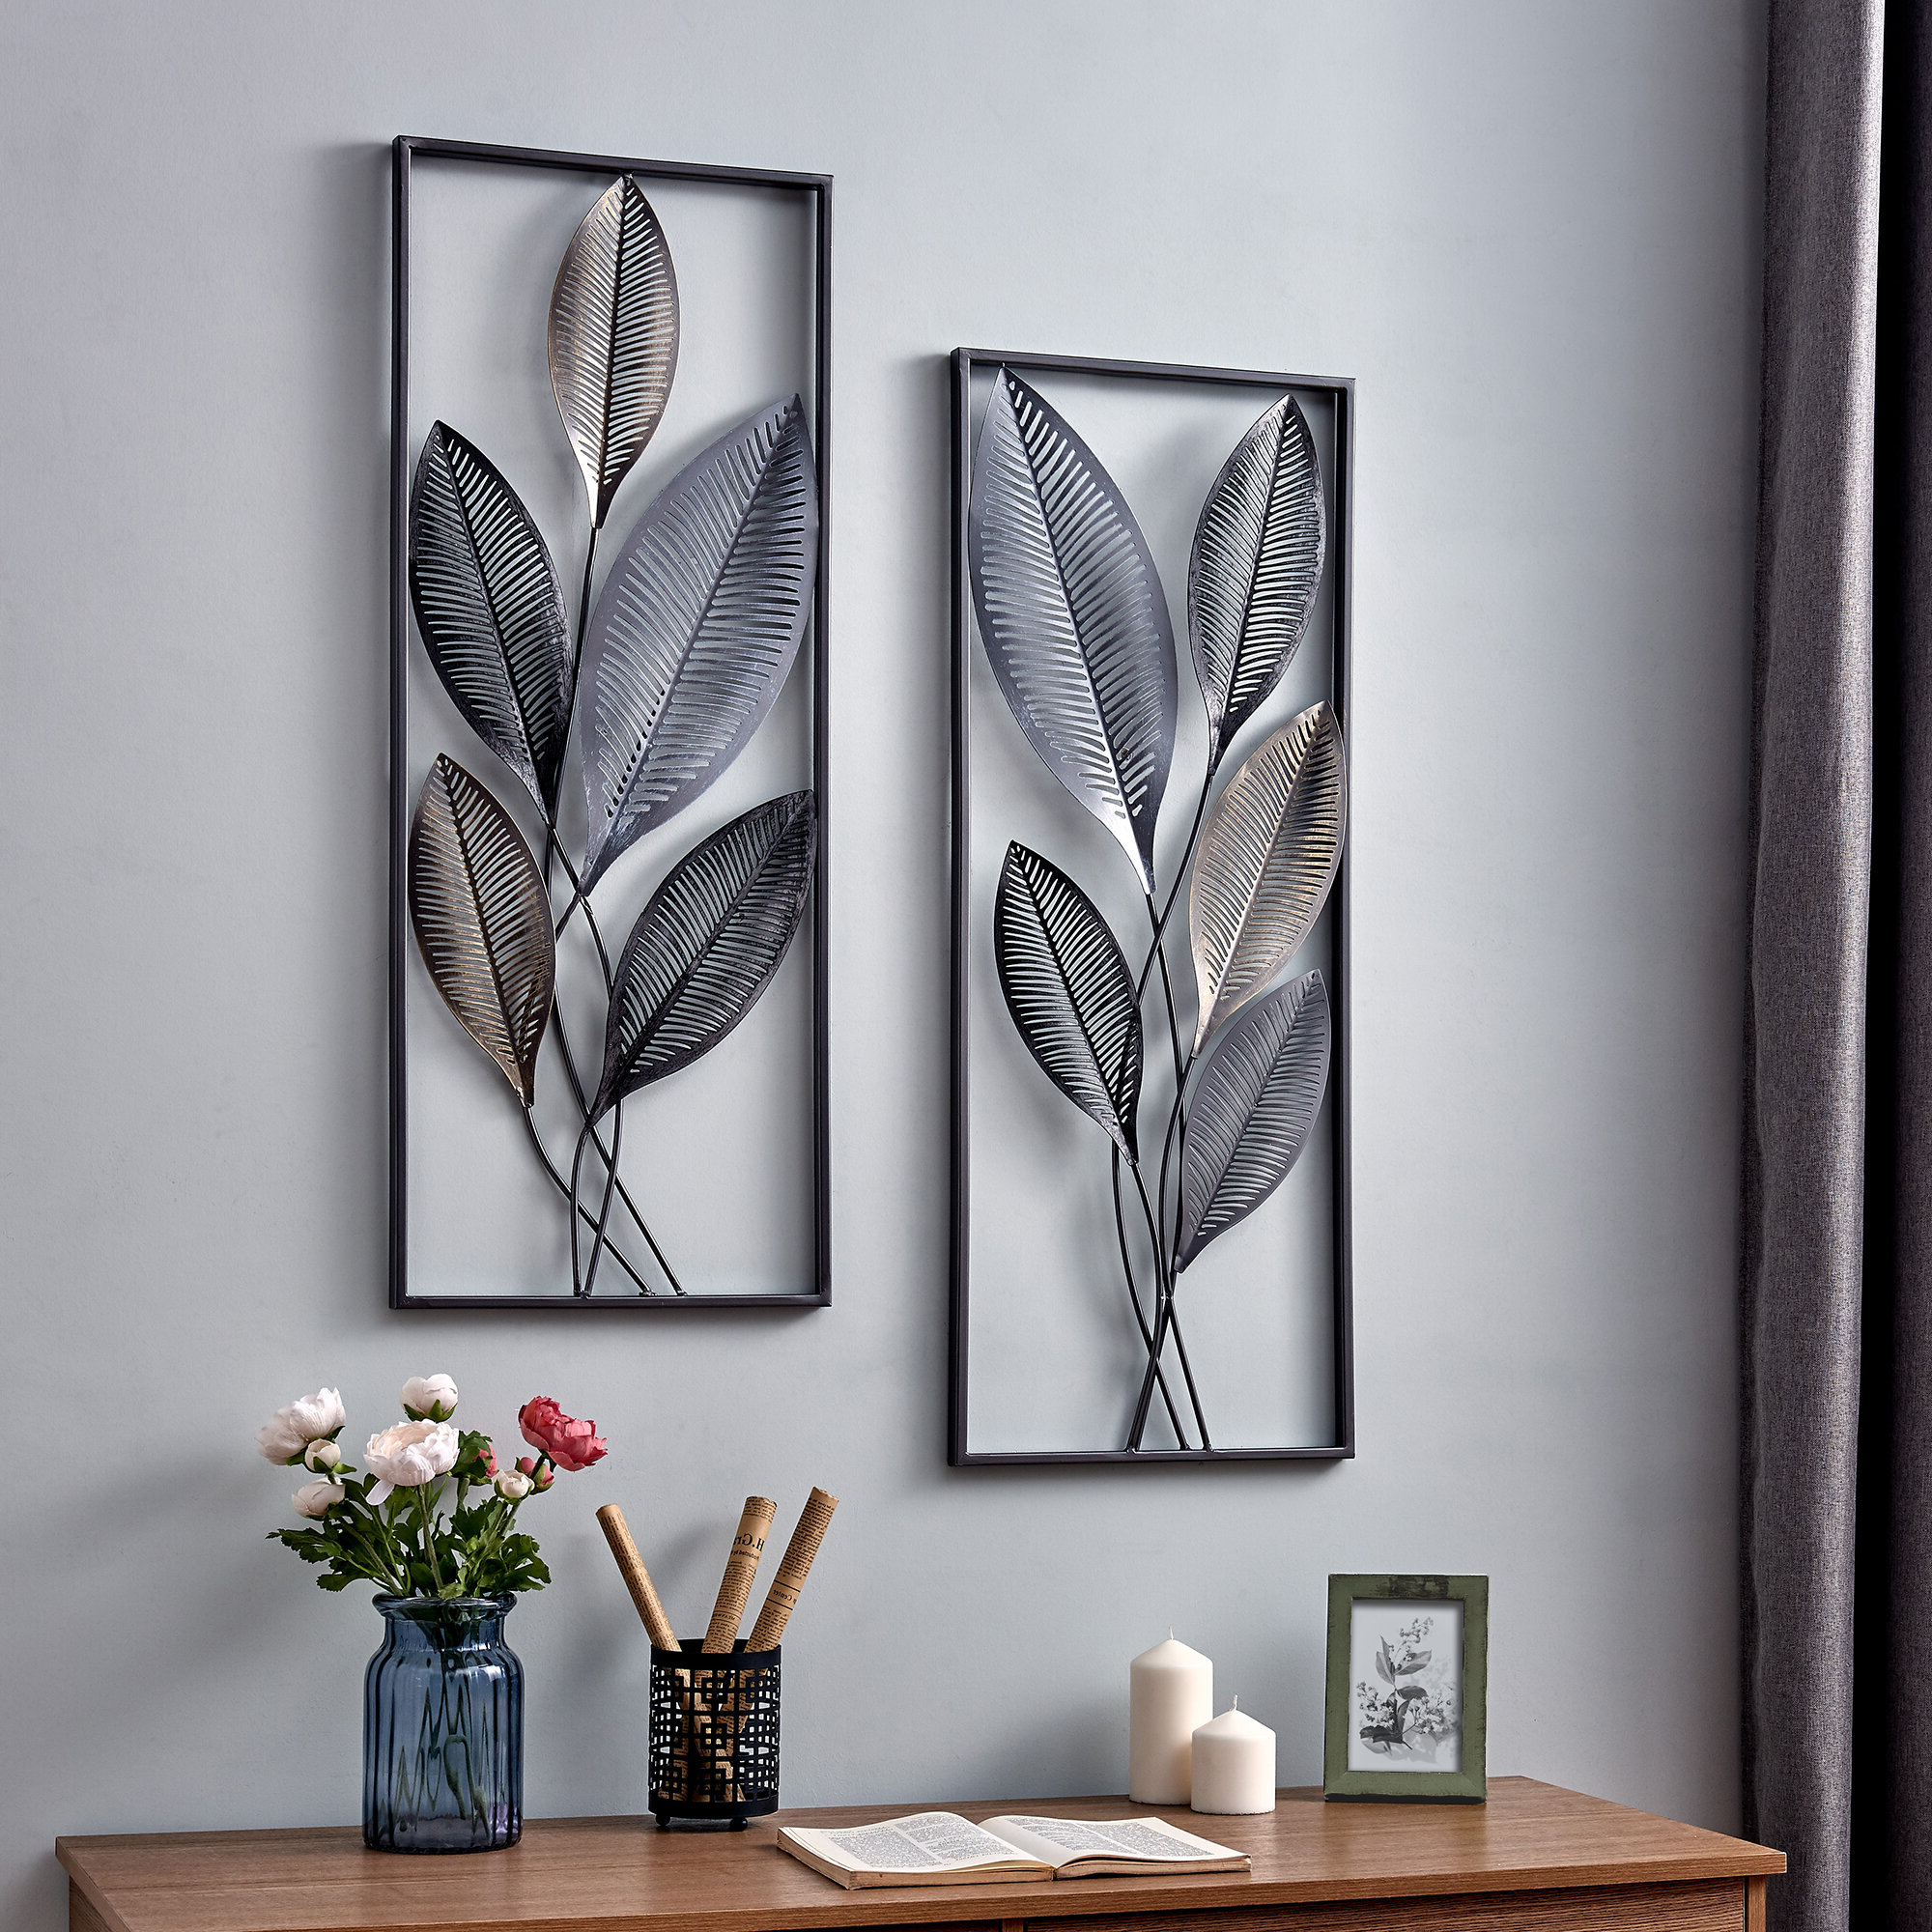 Winston Porter 2 Piece Metallic Leaves Wall Décor Set (View 19 of 20)